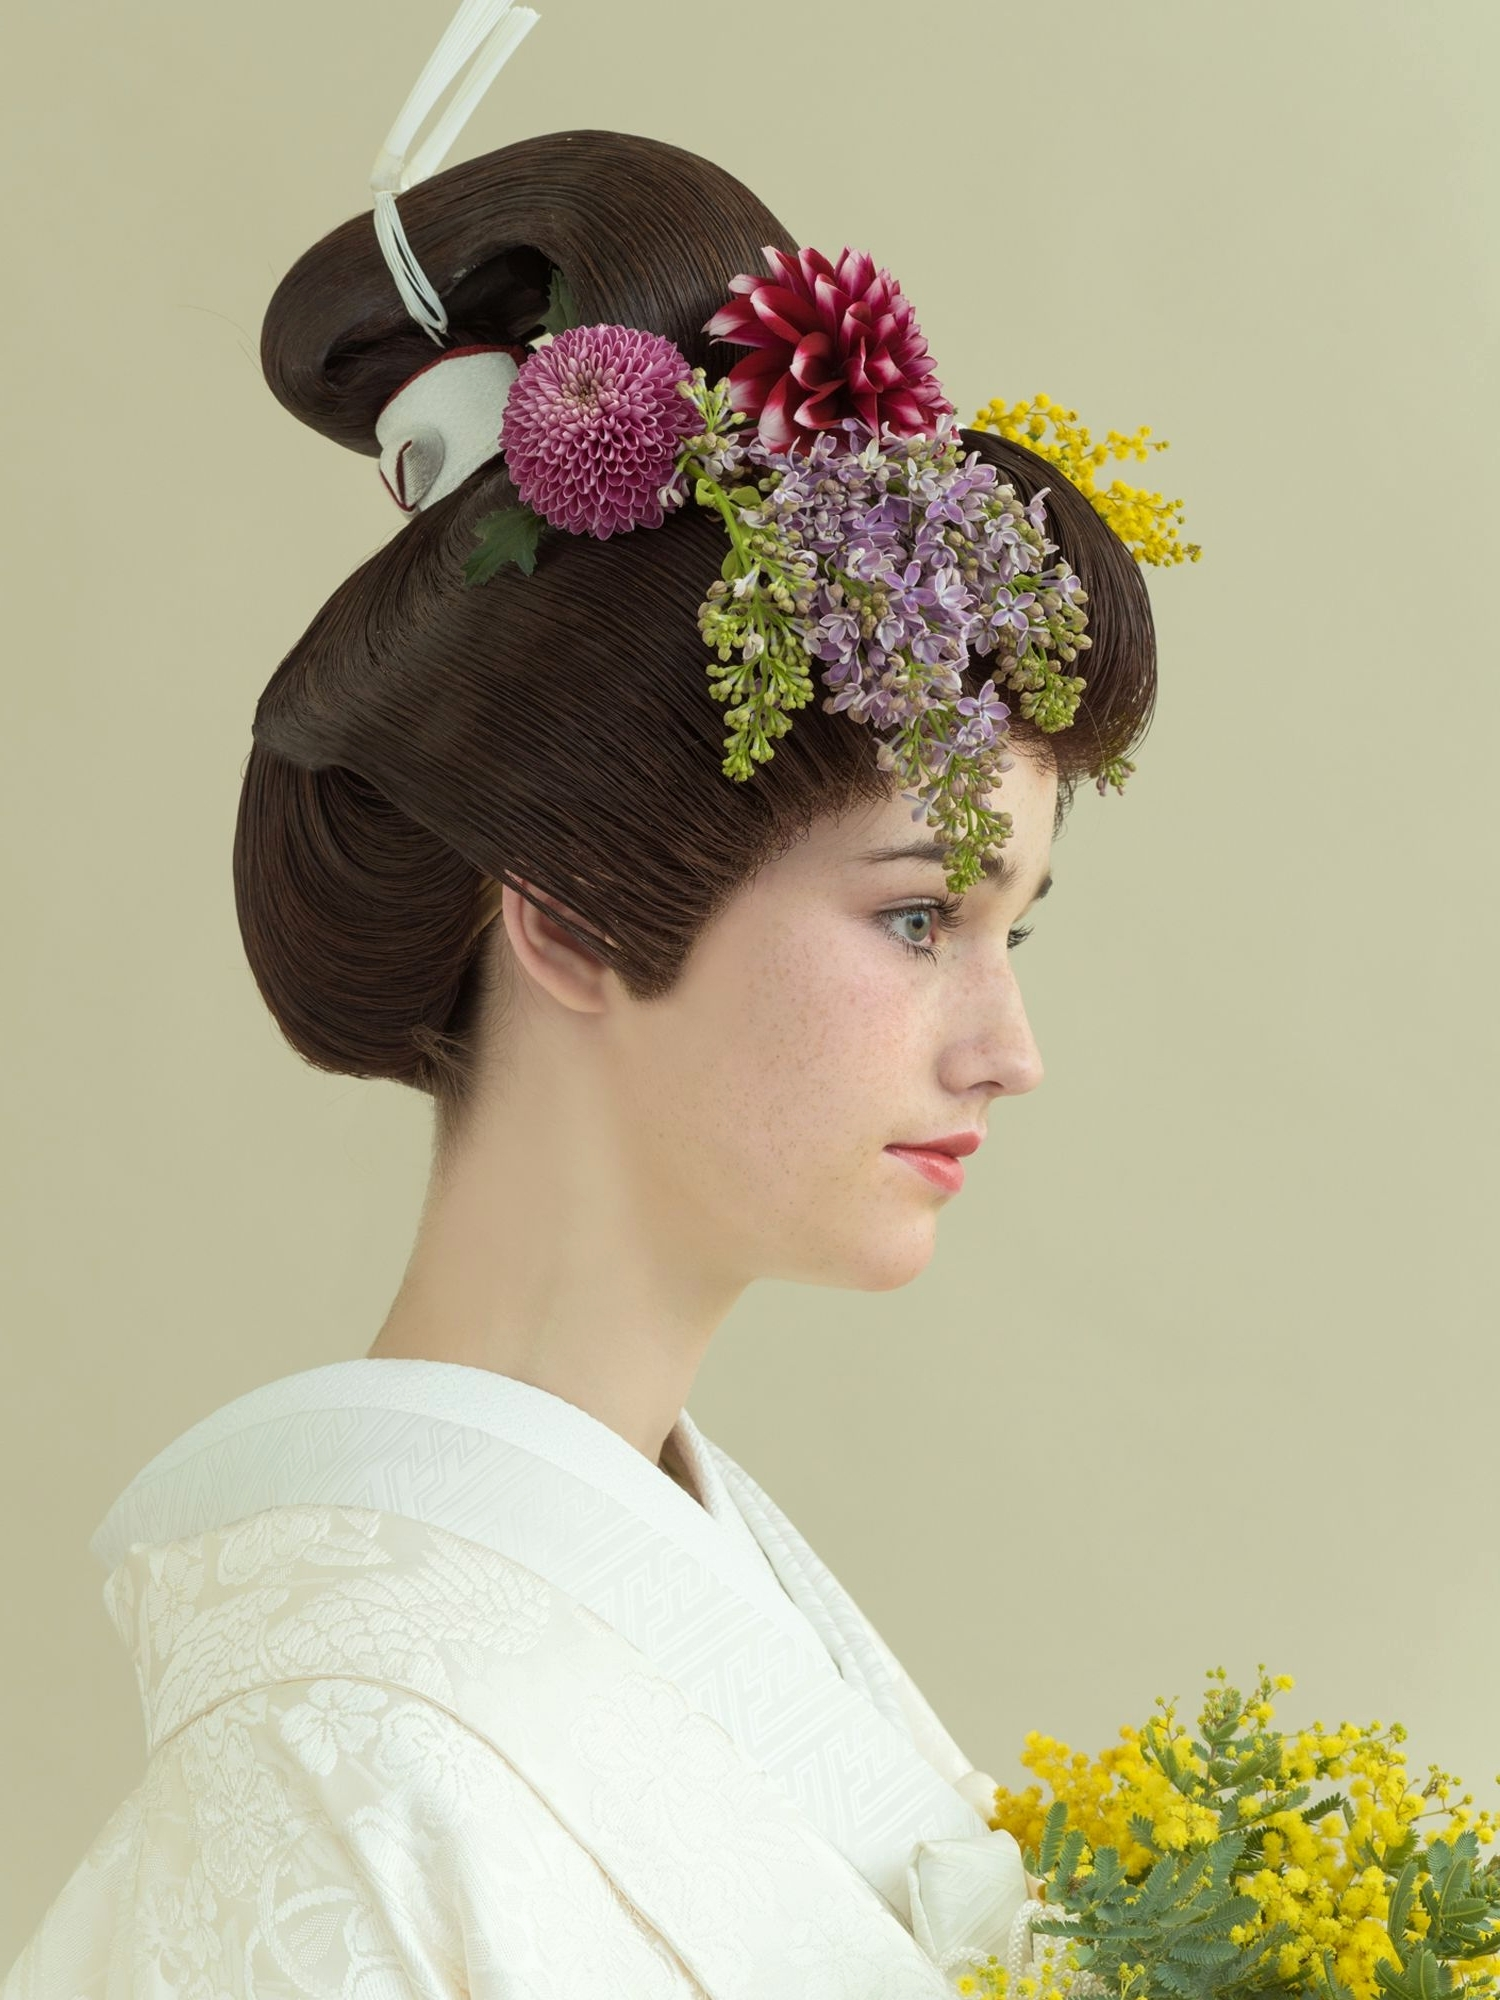 Most Recent Japanese Wedding Hairstyles In Japanese Wedding Hairstyles Sensational Å'œè£… Ç €Ç‰© ϼ Japanese (View 12 of 15)